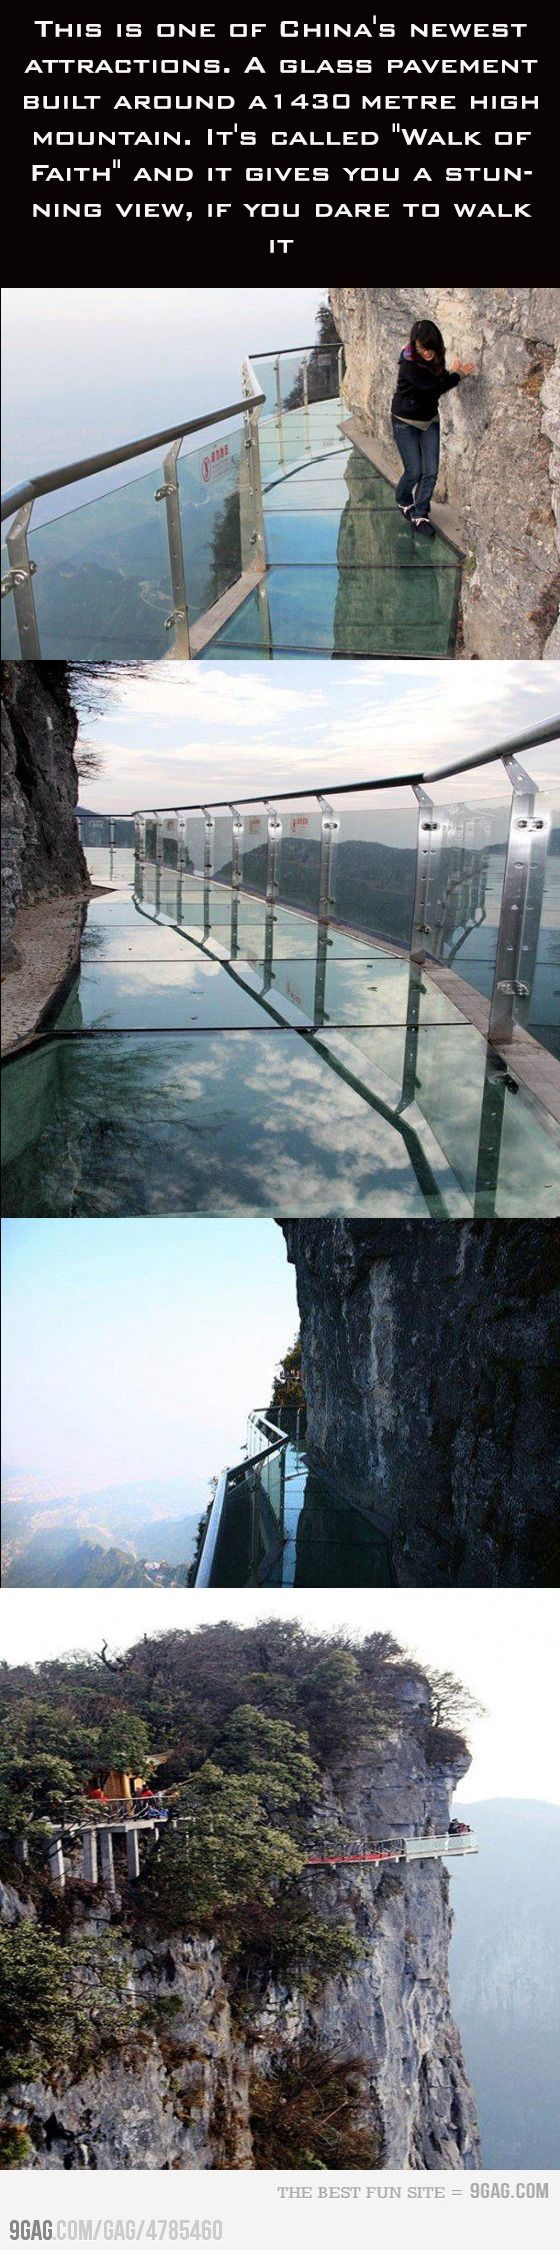 Walk of Faith. Glass Plank Road has been added 1,430 metres (4,690ft) up the Zhangjiajie Tianmen mountain to give the tourists an unforgettable sightseeing experience.